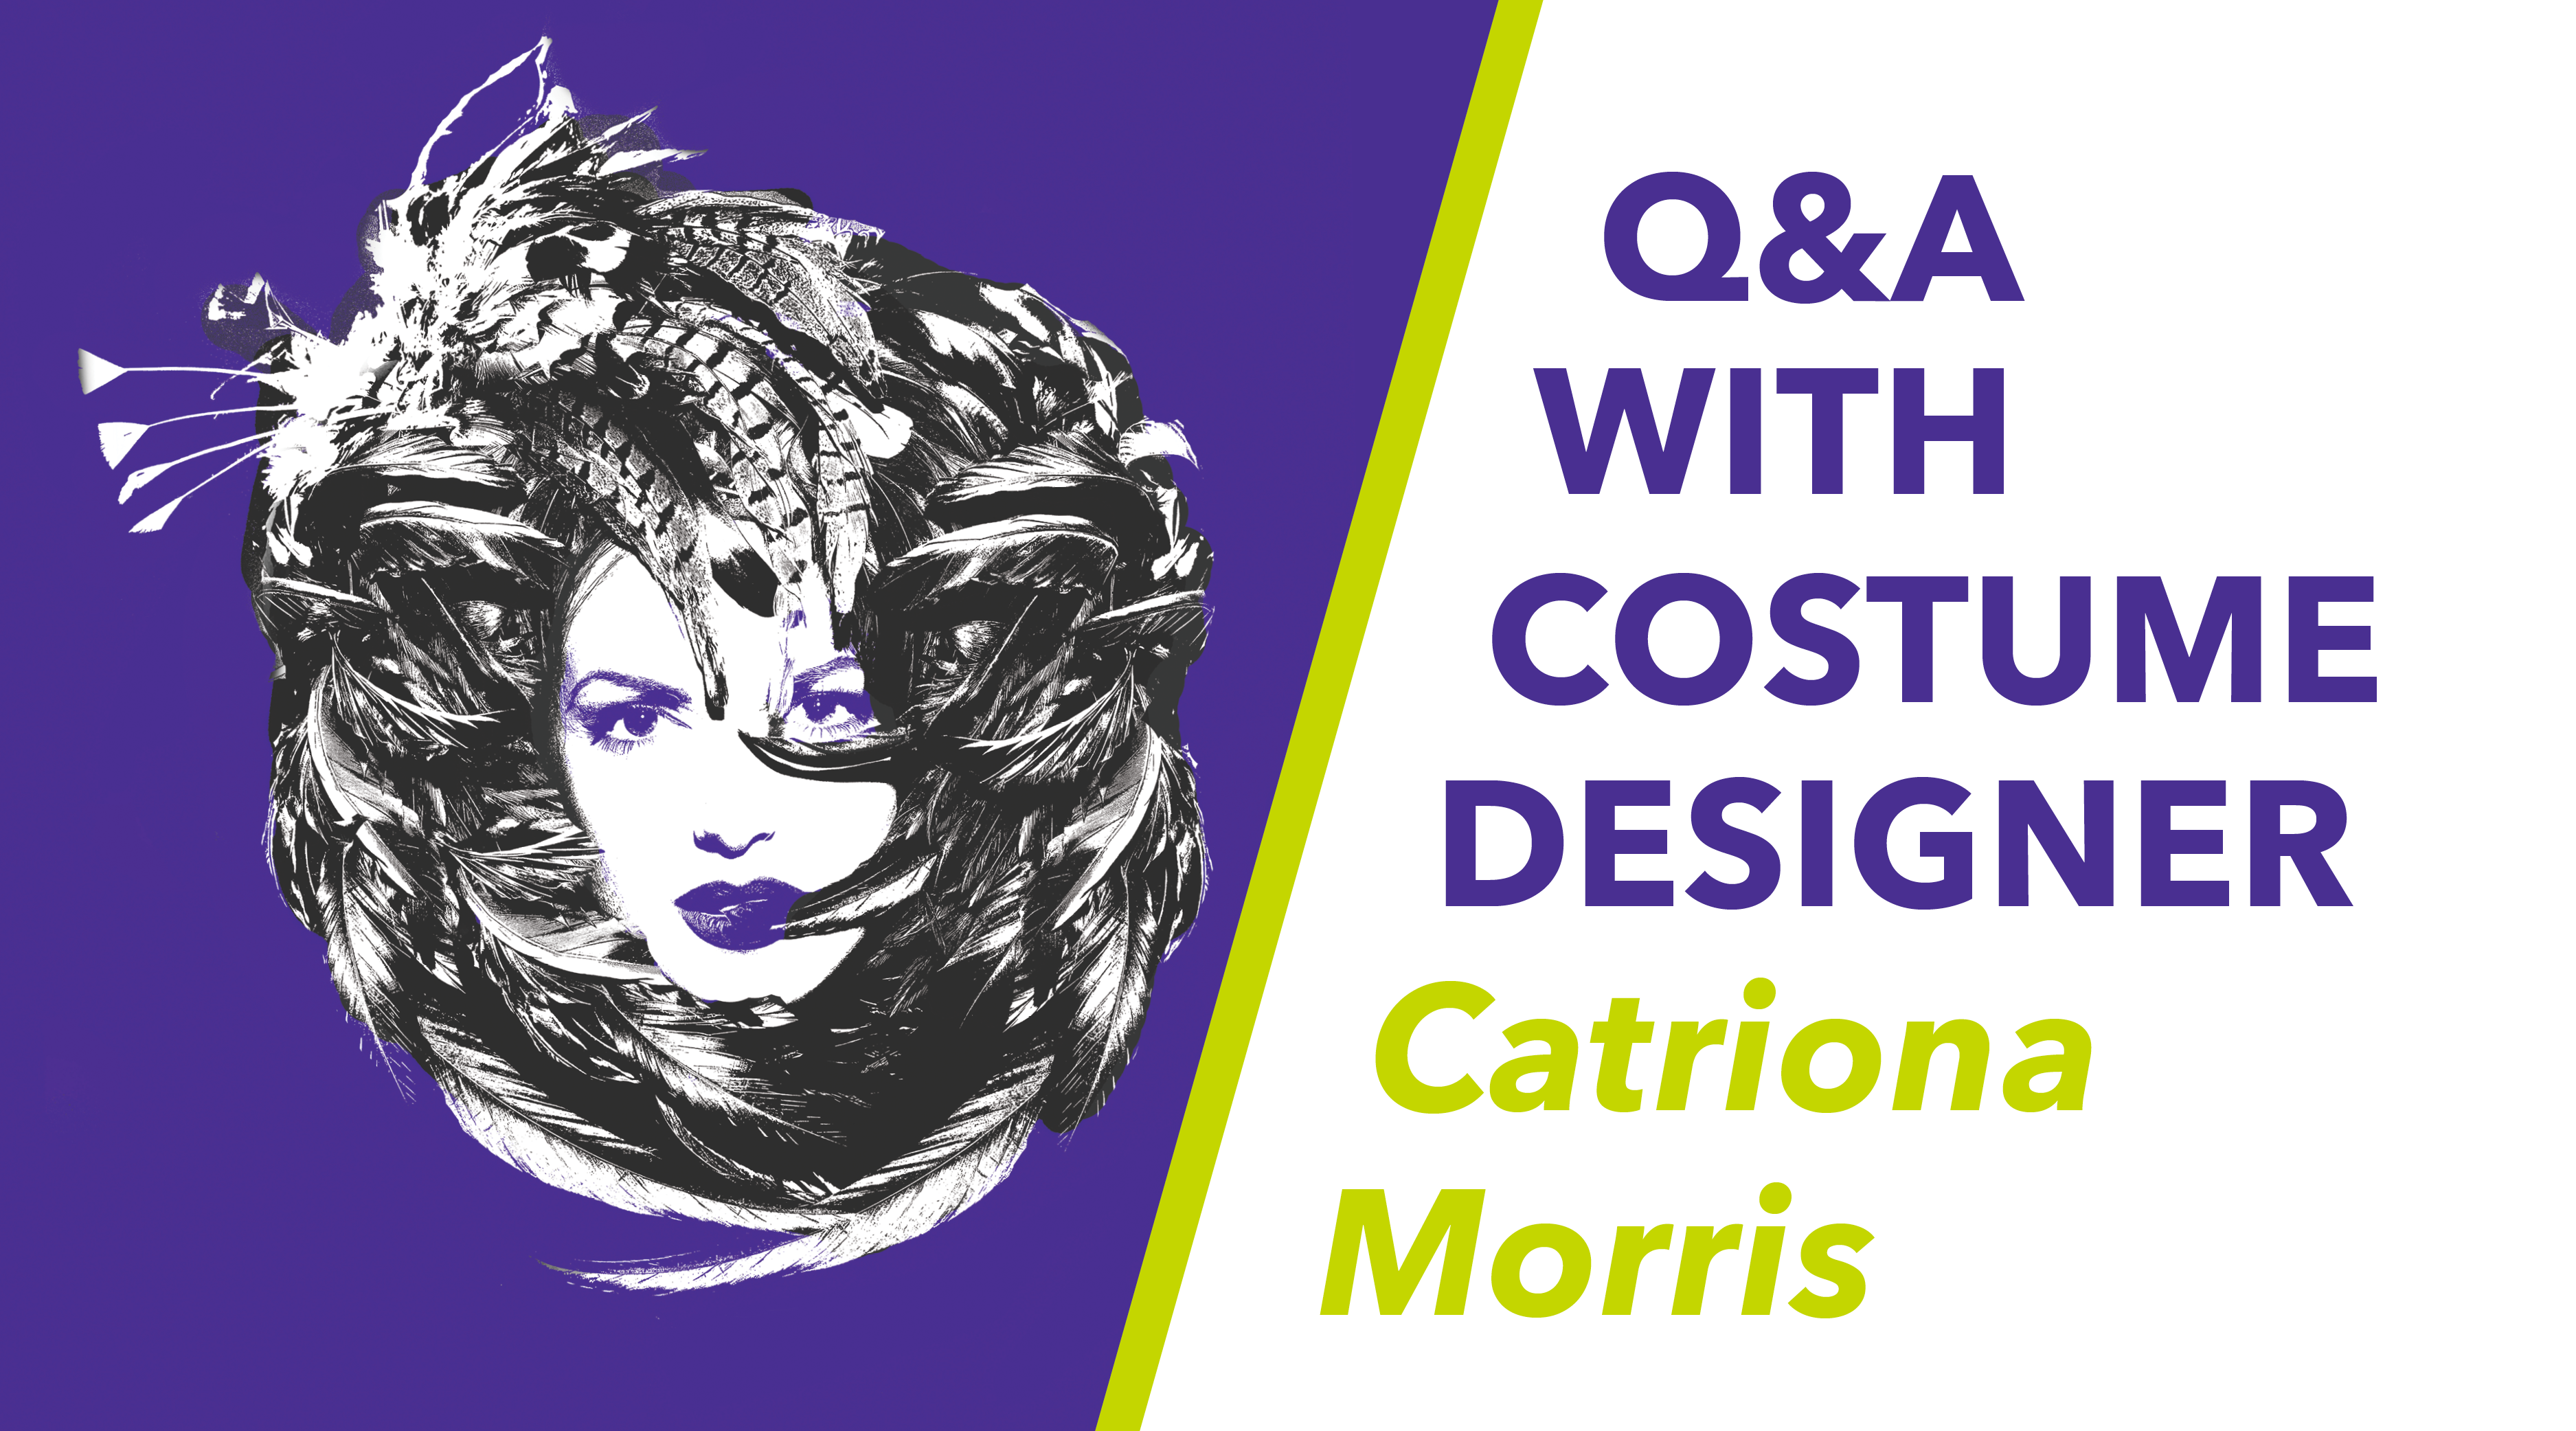 Q&A with Catriona Morris Digital Graphic Header